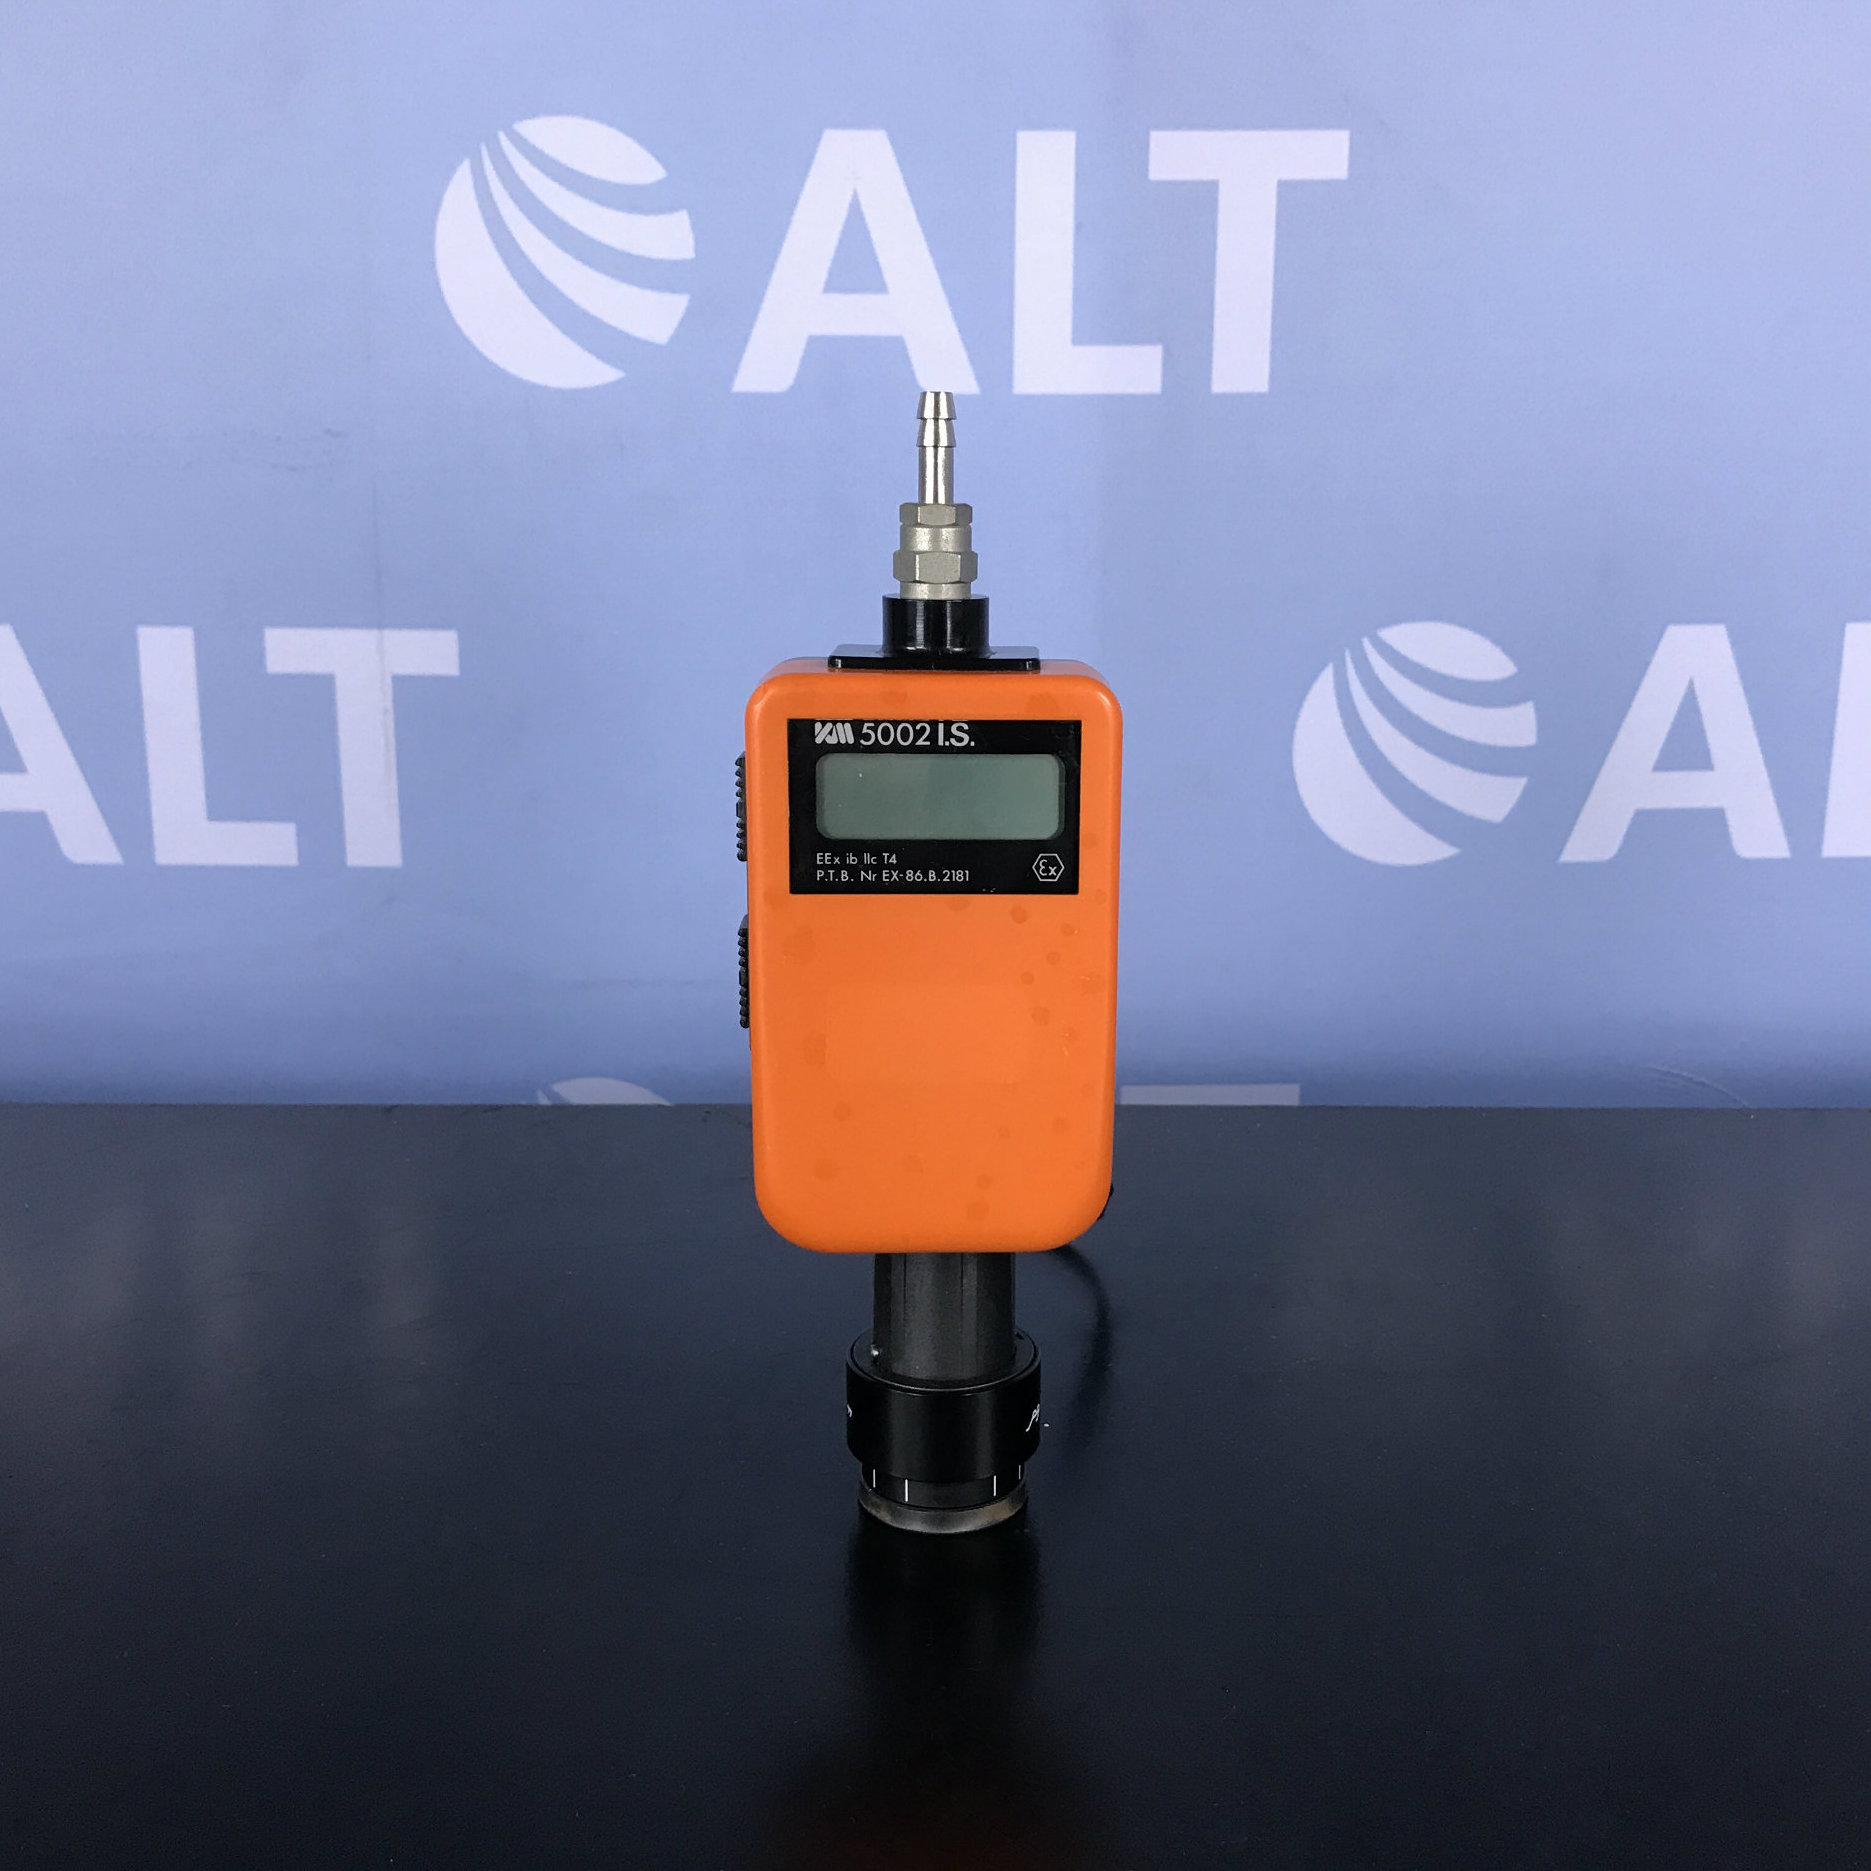 Kane-May Digital Pressure Meter 5002 I.S. Kit Image